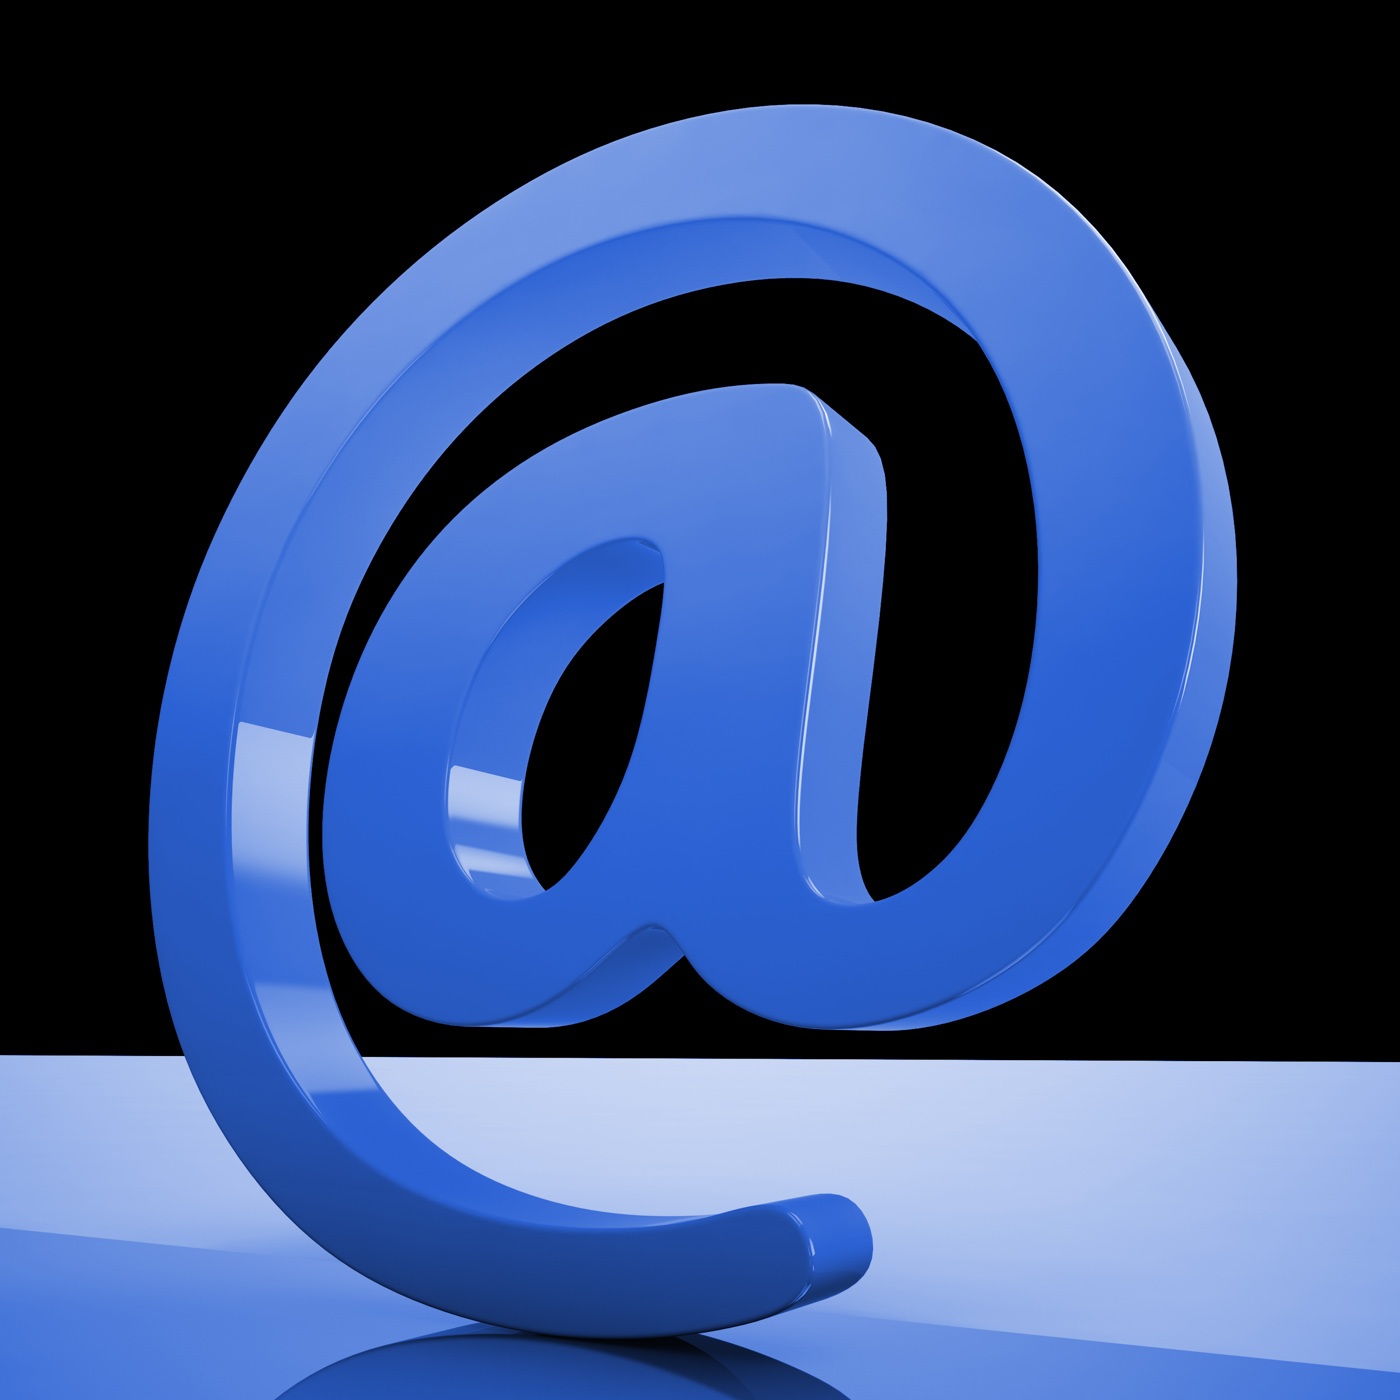 At Sign Mean Email Correspondence on Web, Communicate, Mailing, Support, Sign, HQ Photo